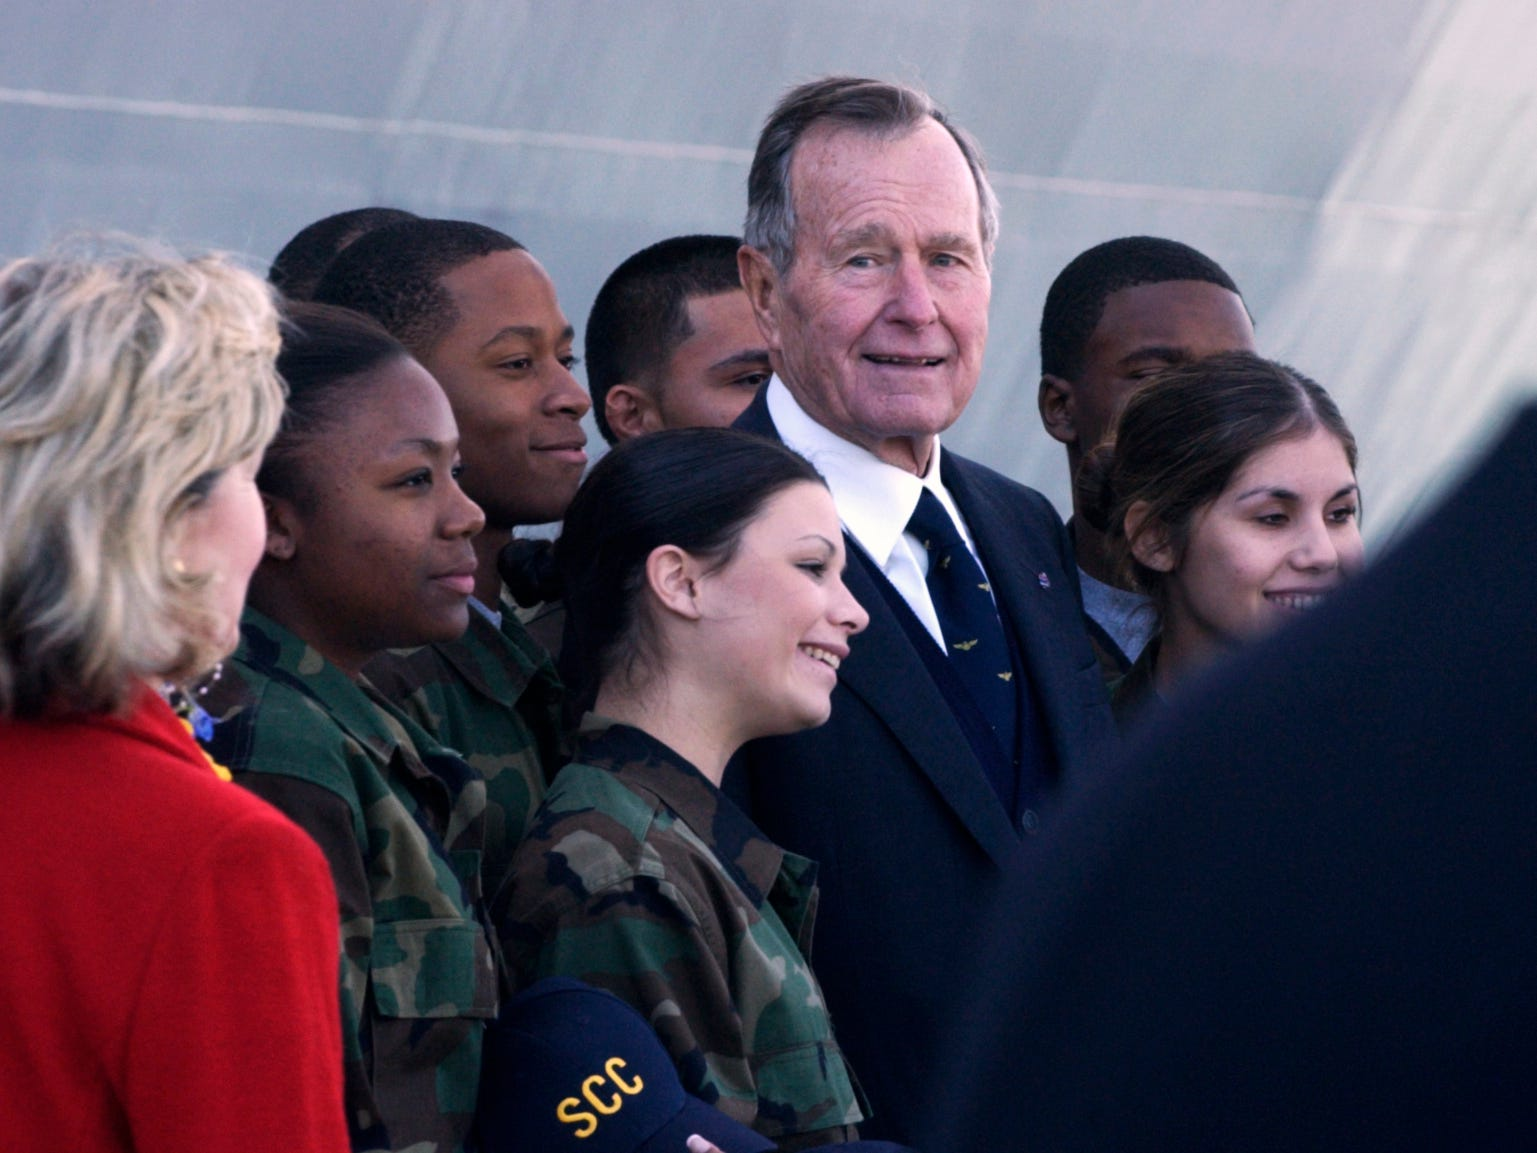 Former President George H.W. Bush (center) participated in the commissioning ceremony of the USS San Antonio at Naval Station Ingleside in January 2006. Former President Bush gave the principal address at the ceremony.